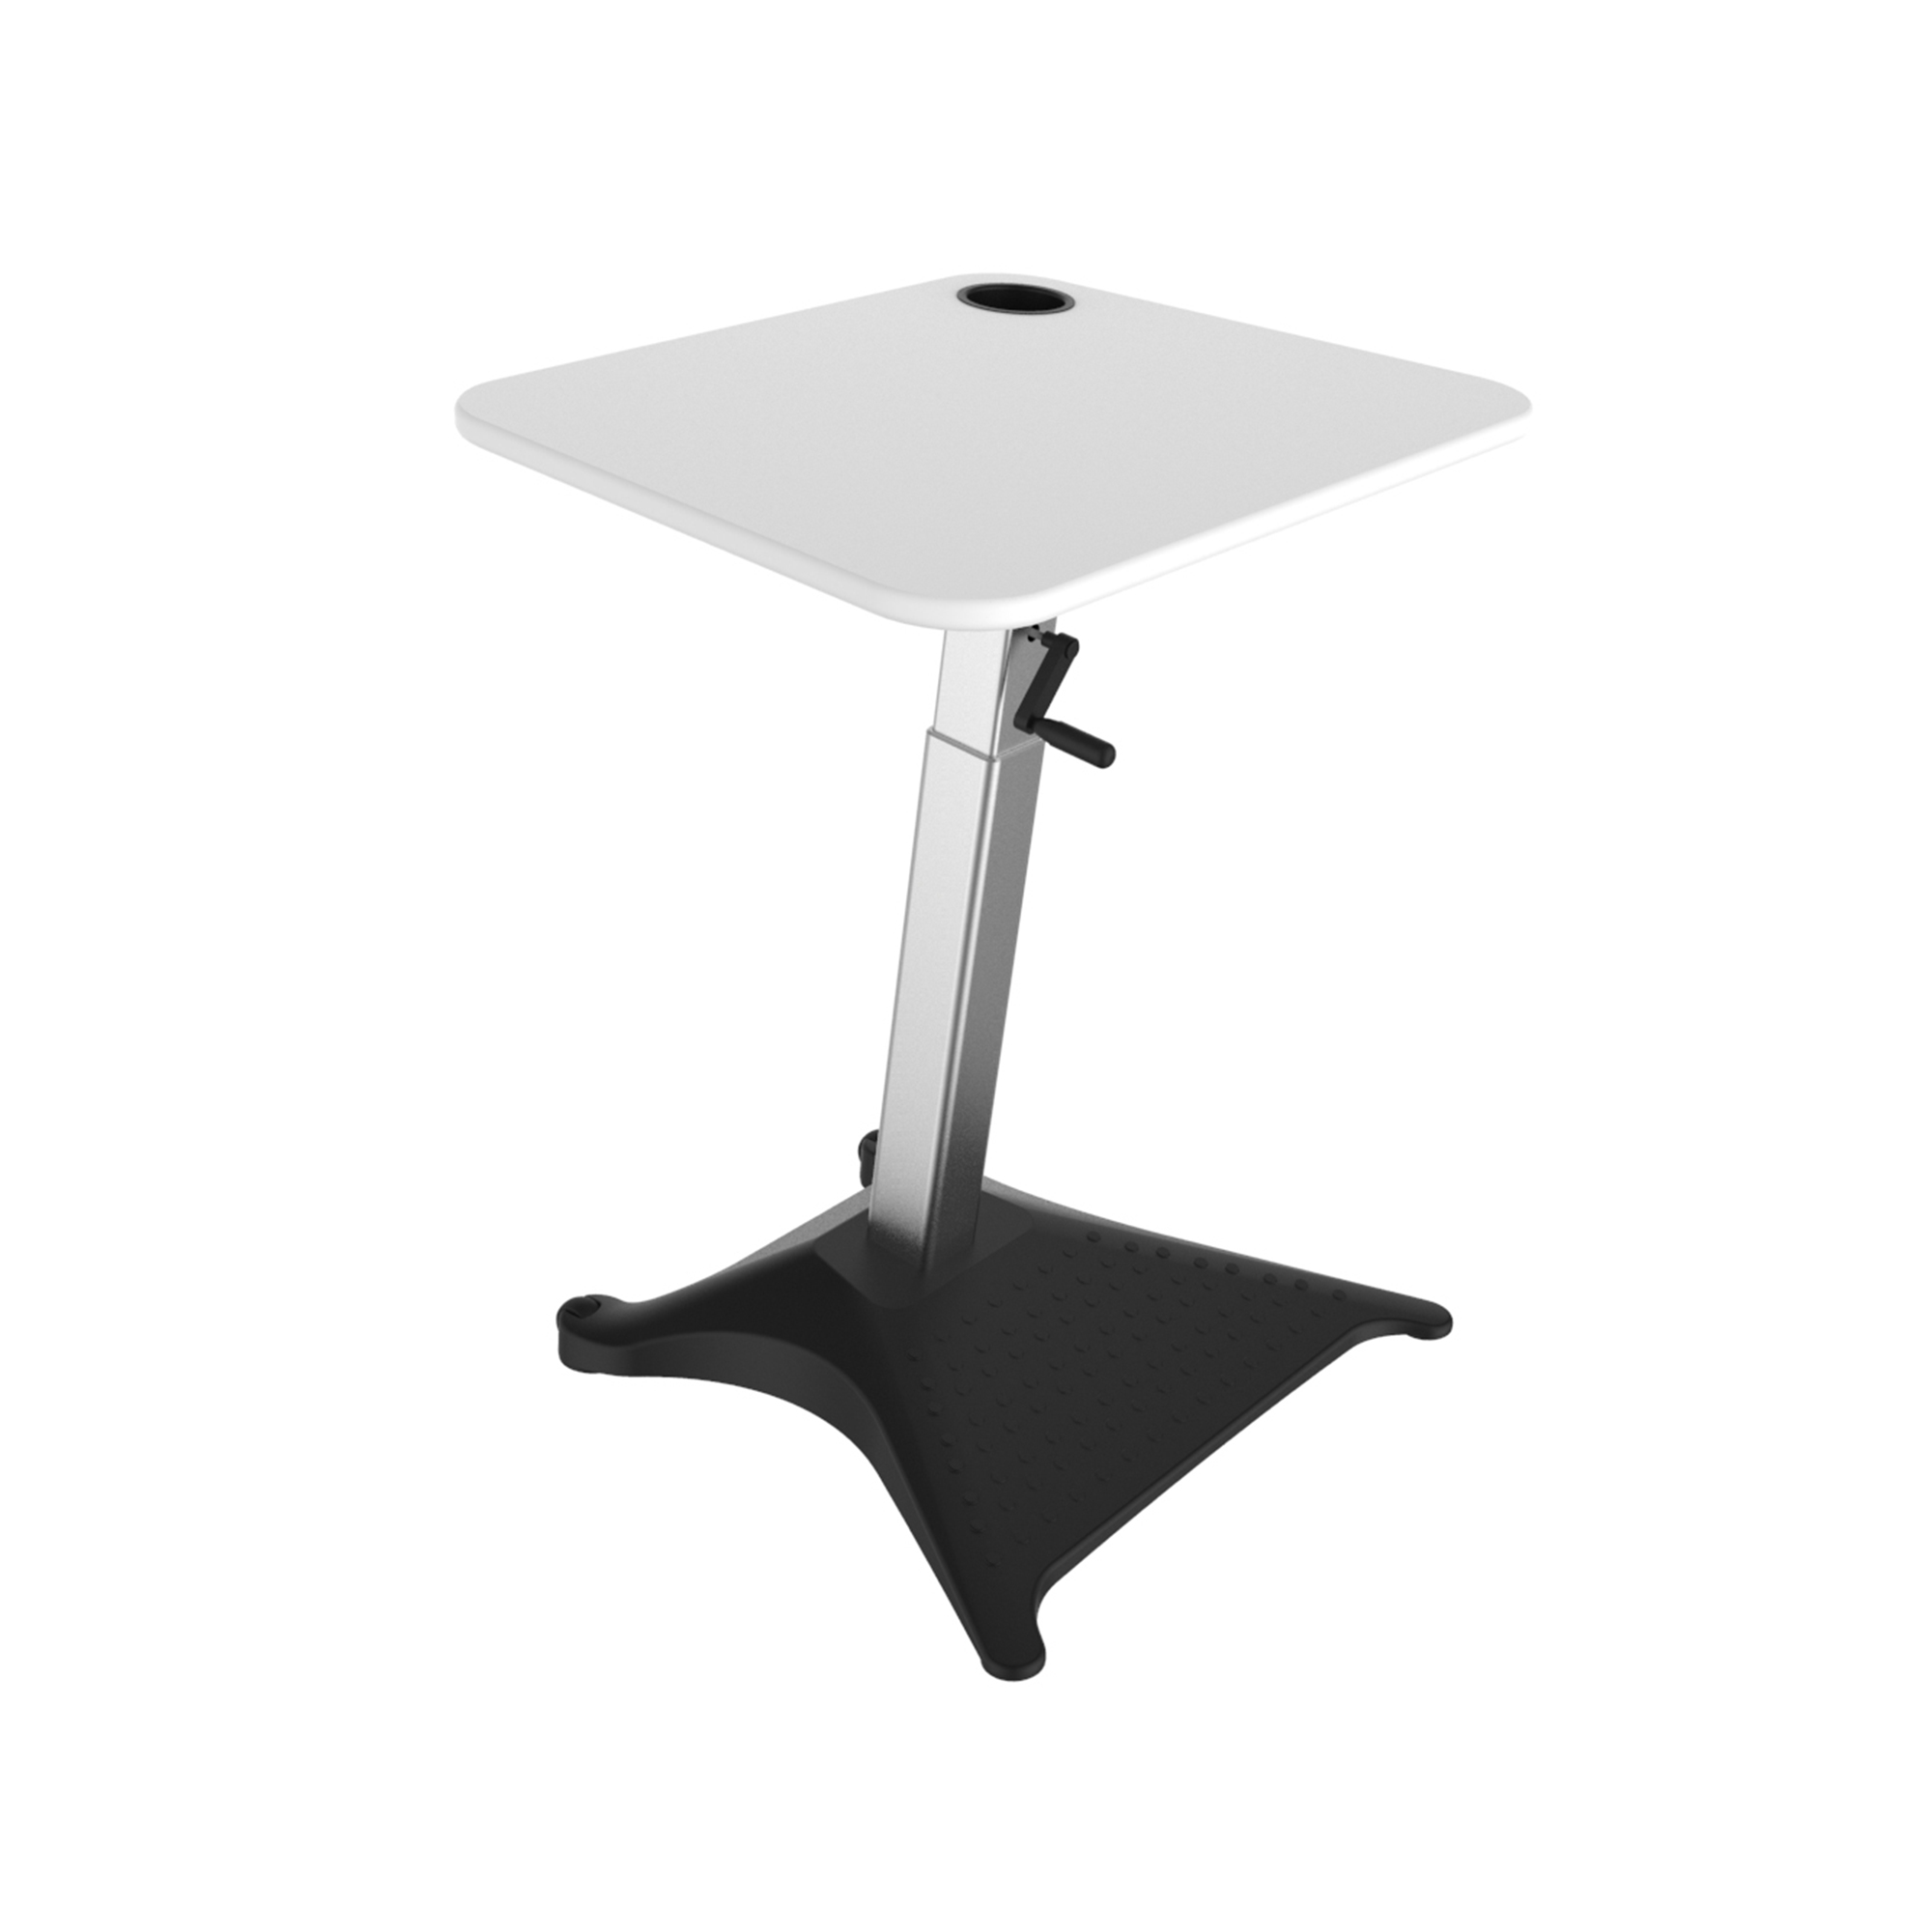 Safco Products Focal Brio Height Adjustable Standing Desk 19